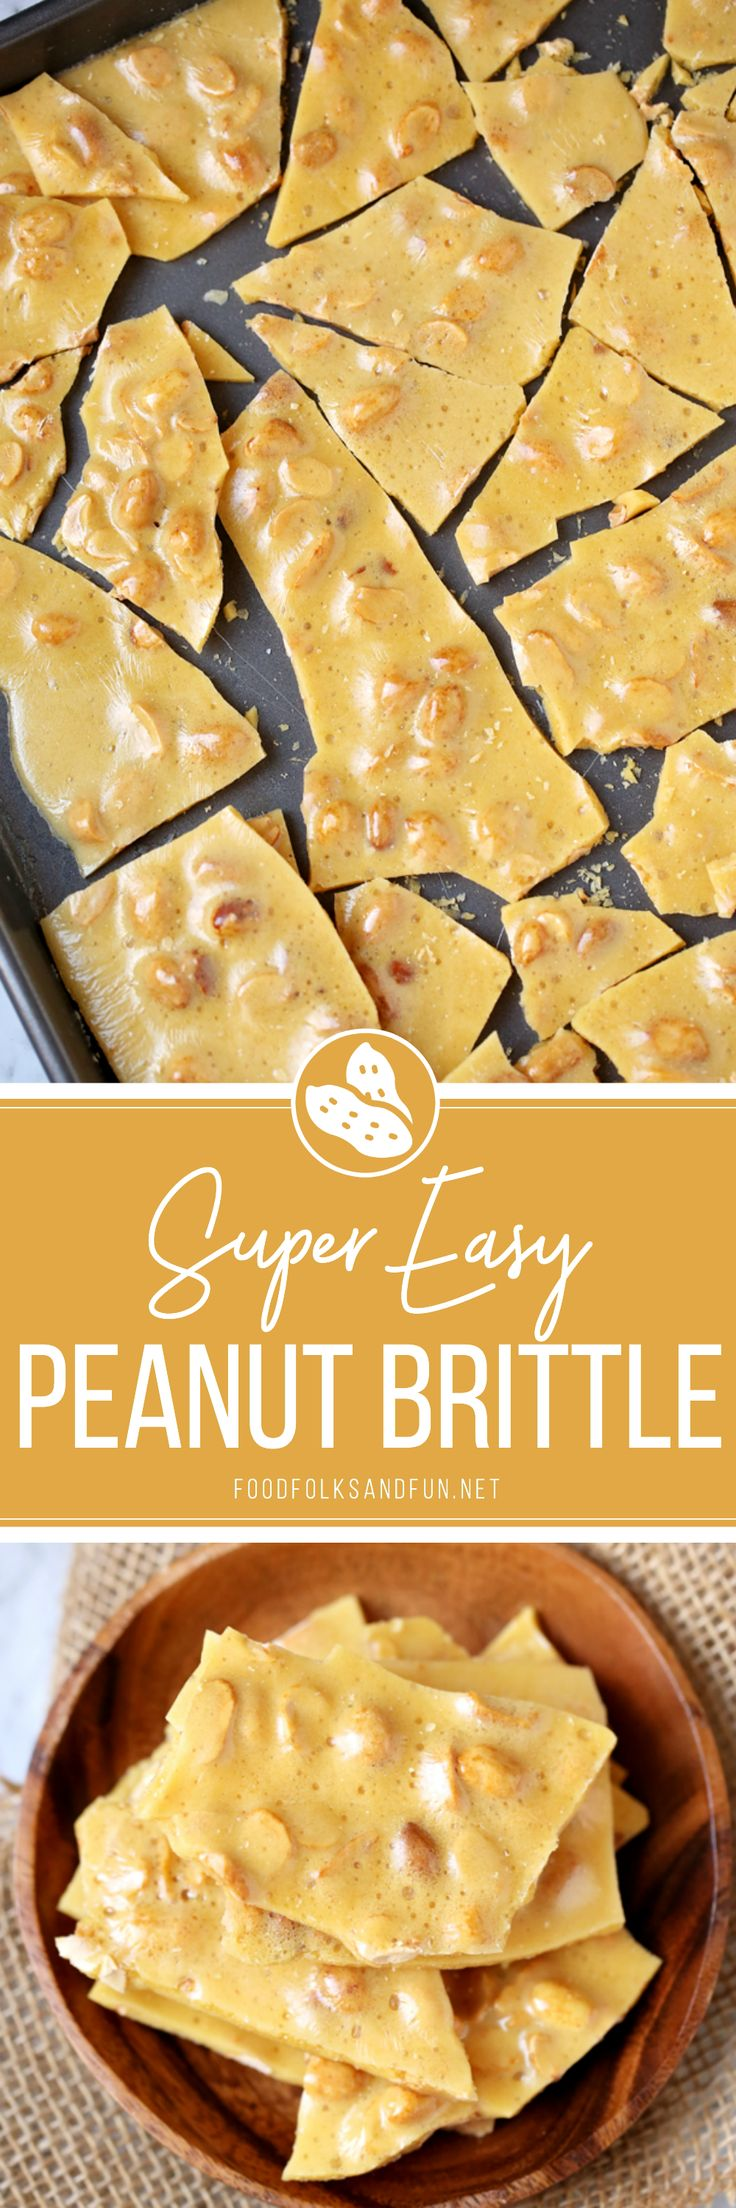 134222 best food group images on pinterest cooking food this classic peanut brittle recipe is easy to make and great for gift giving year round its buttery airy and oh so addicting it include a recipe video forumfinder Gallery